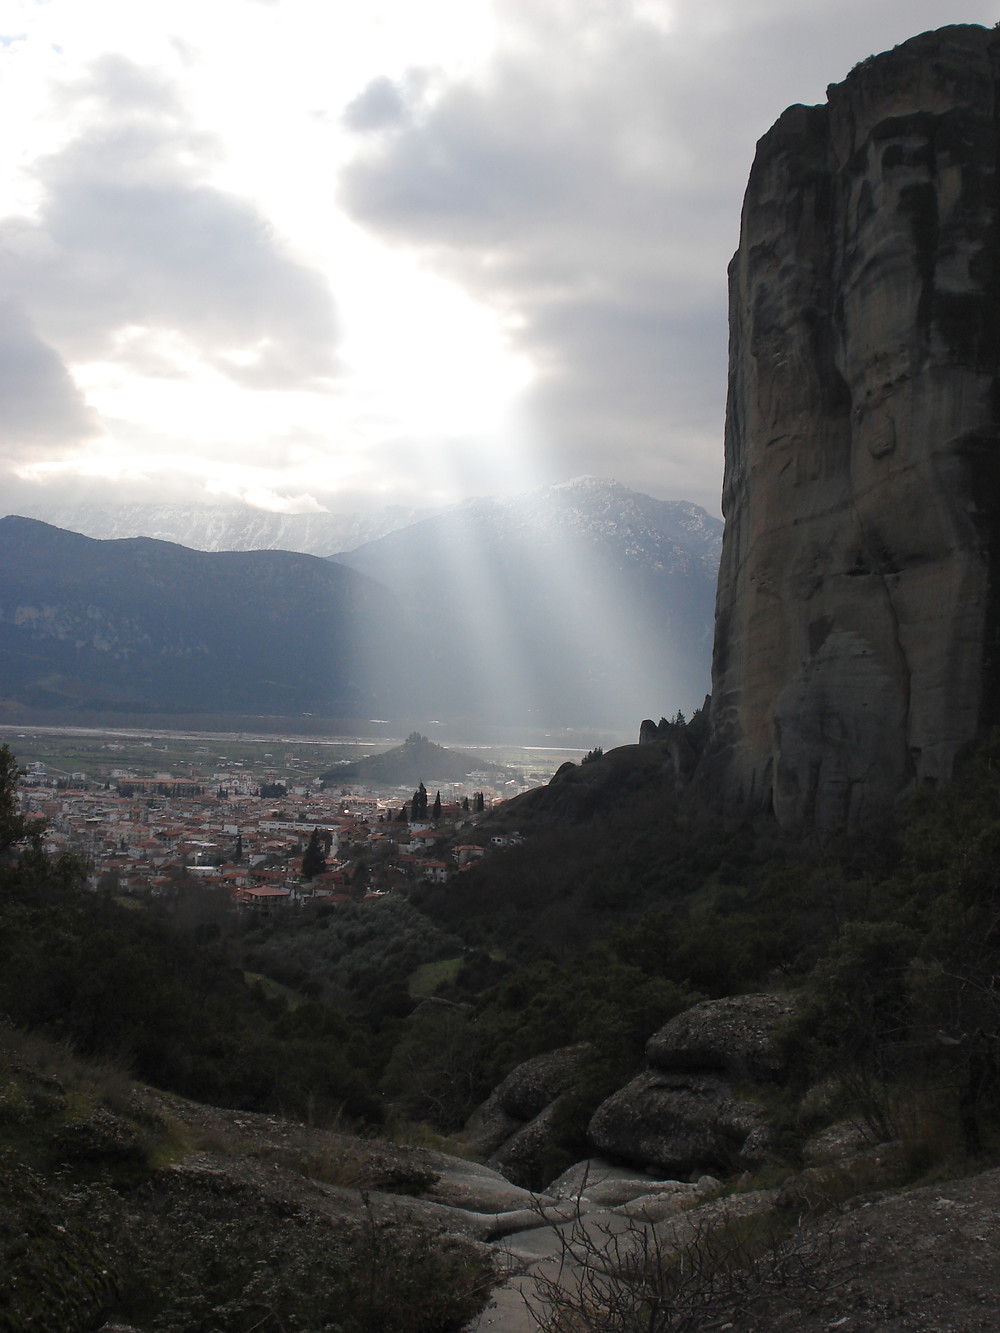 A cliff in the desert, sunshine breaking through clouds.